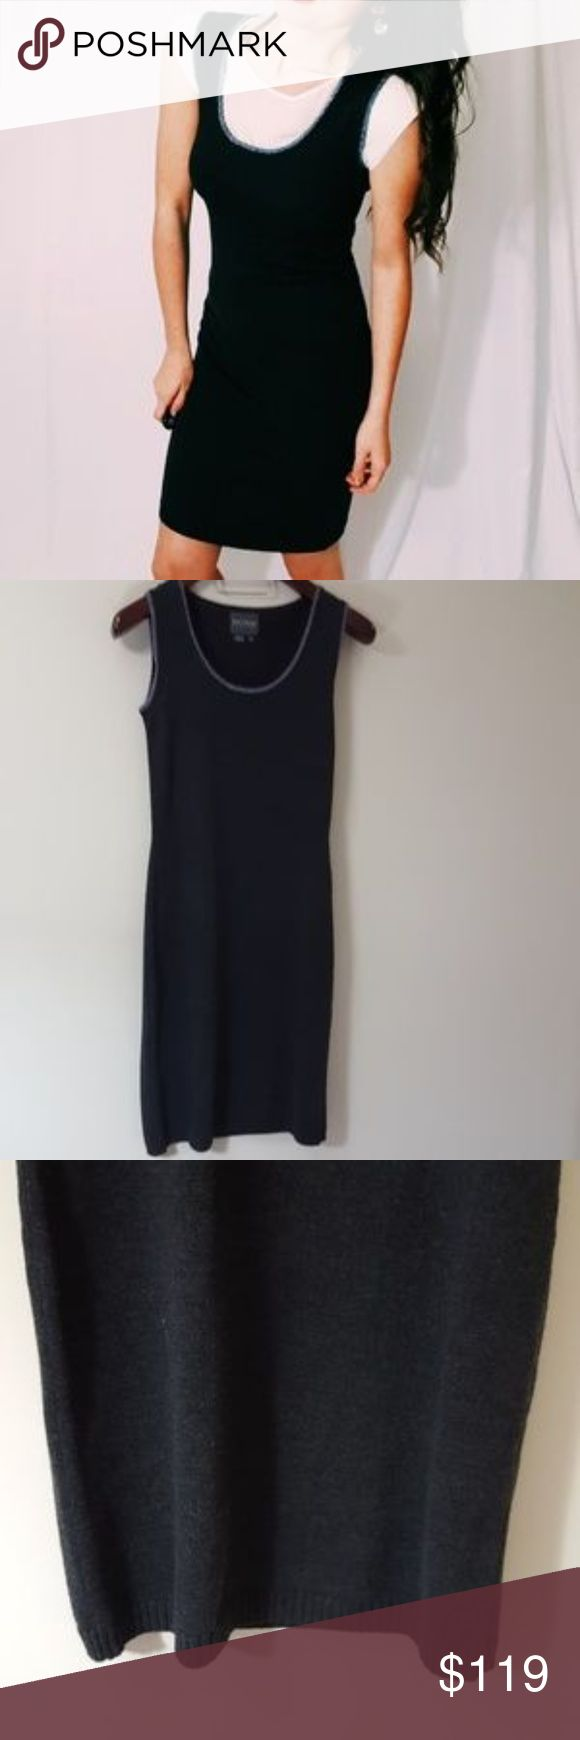 Kay Unger gray wool dress small -C4 In good condition! Kay Unger gray wool dress, size small. Beautiful woth a cardigan or worn with a shirt underneath! Used item : pictures show any signs of wear. Inspected for quality and wear. Bundle up! Offers always welcome!:) Kay Unger Dresses